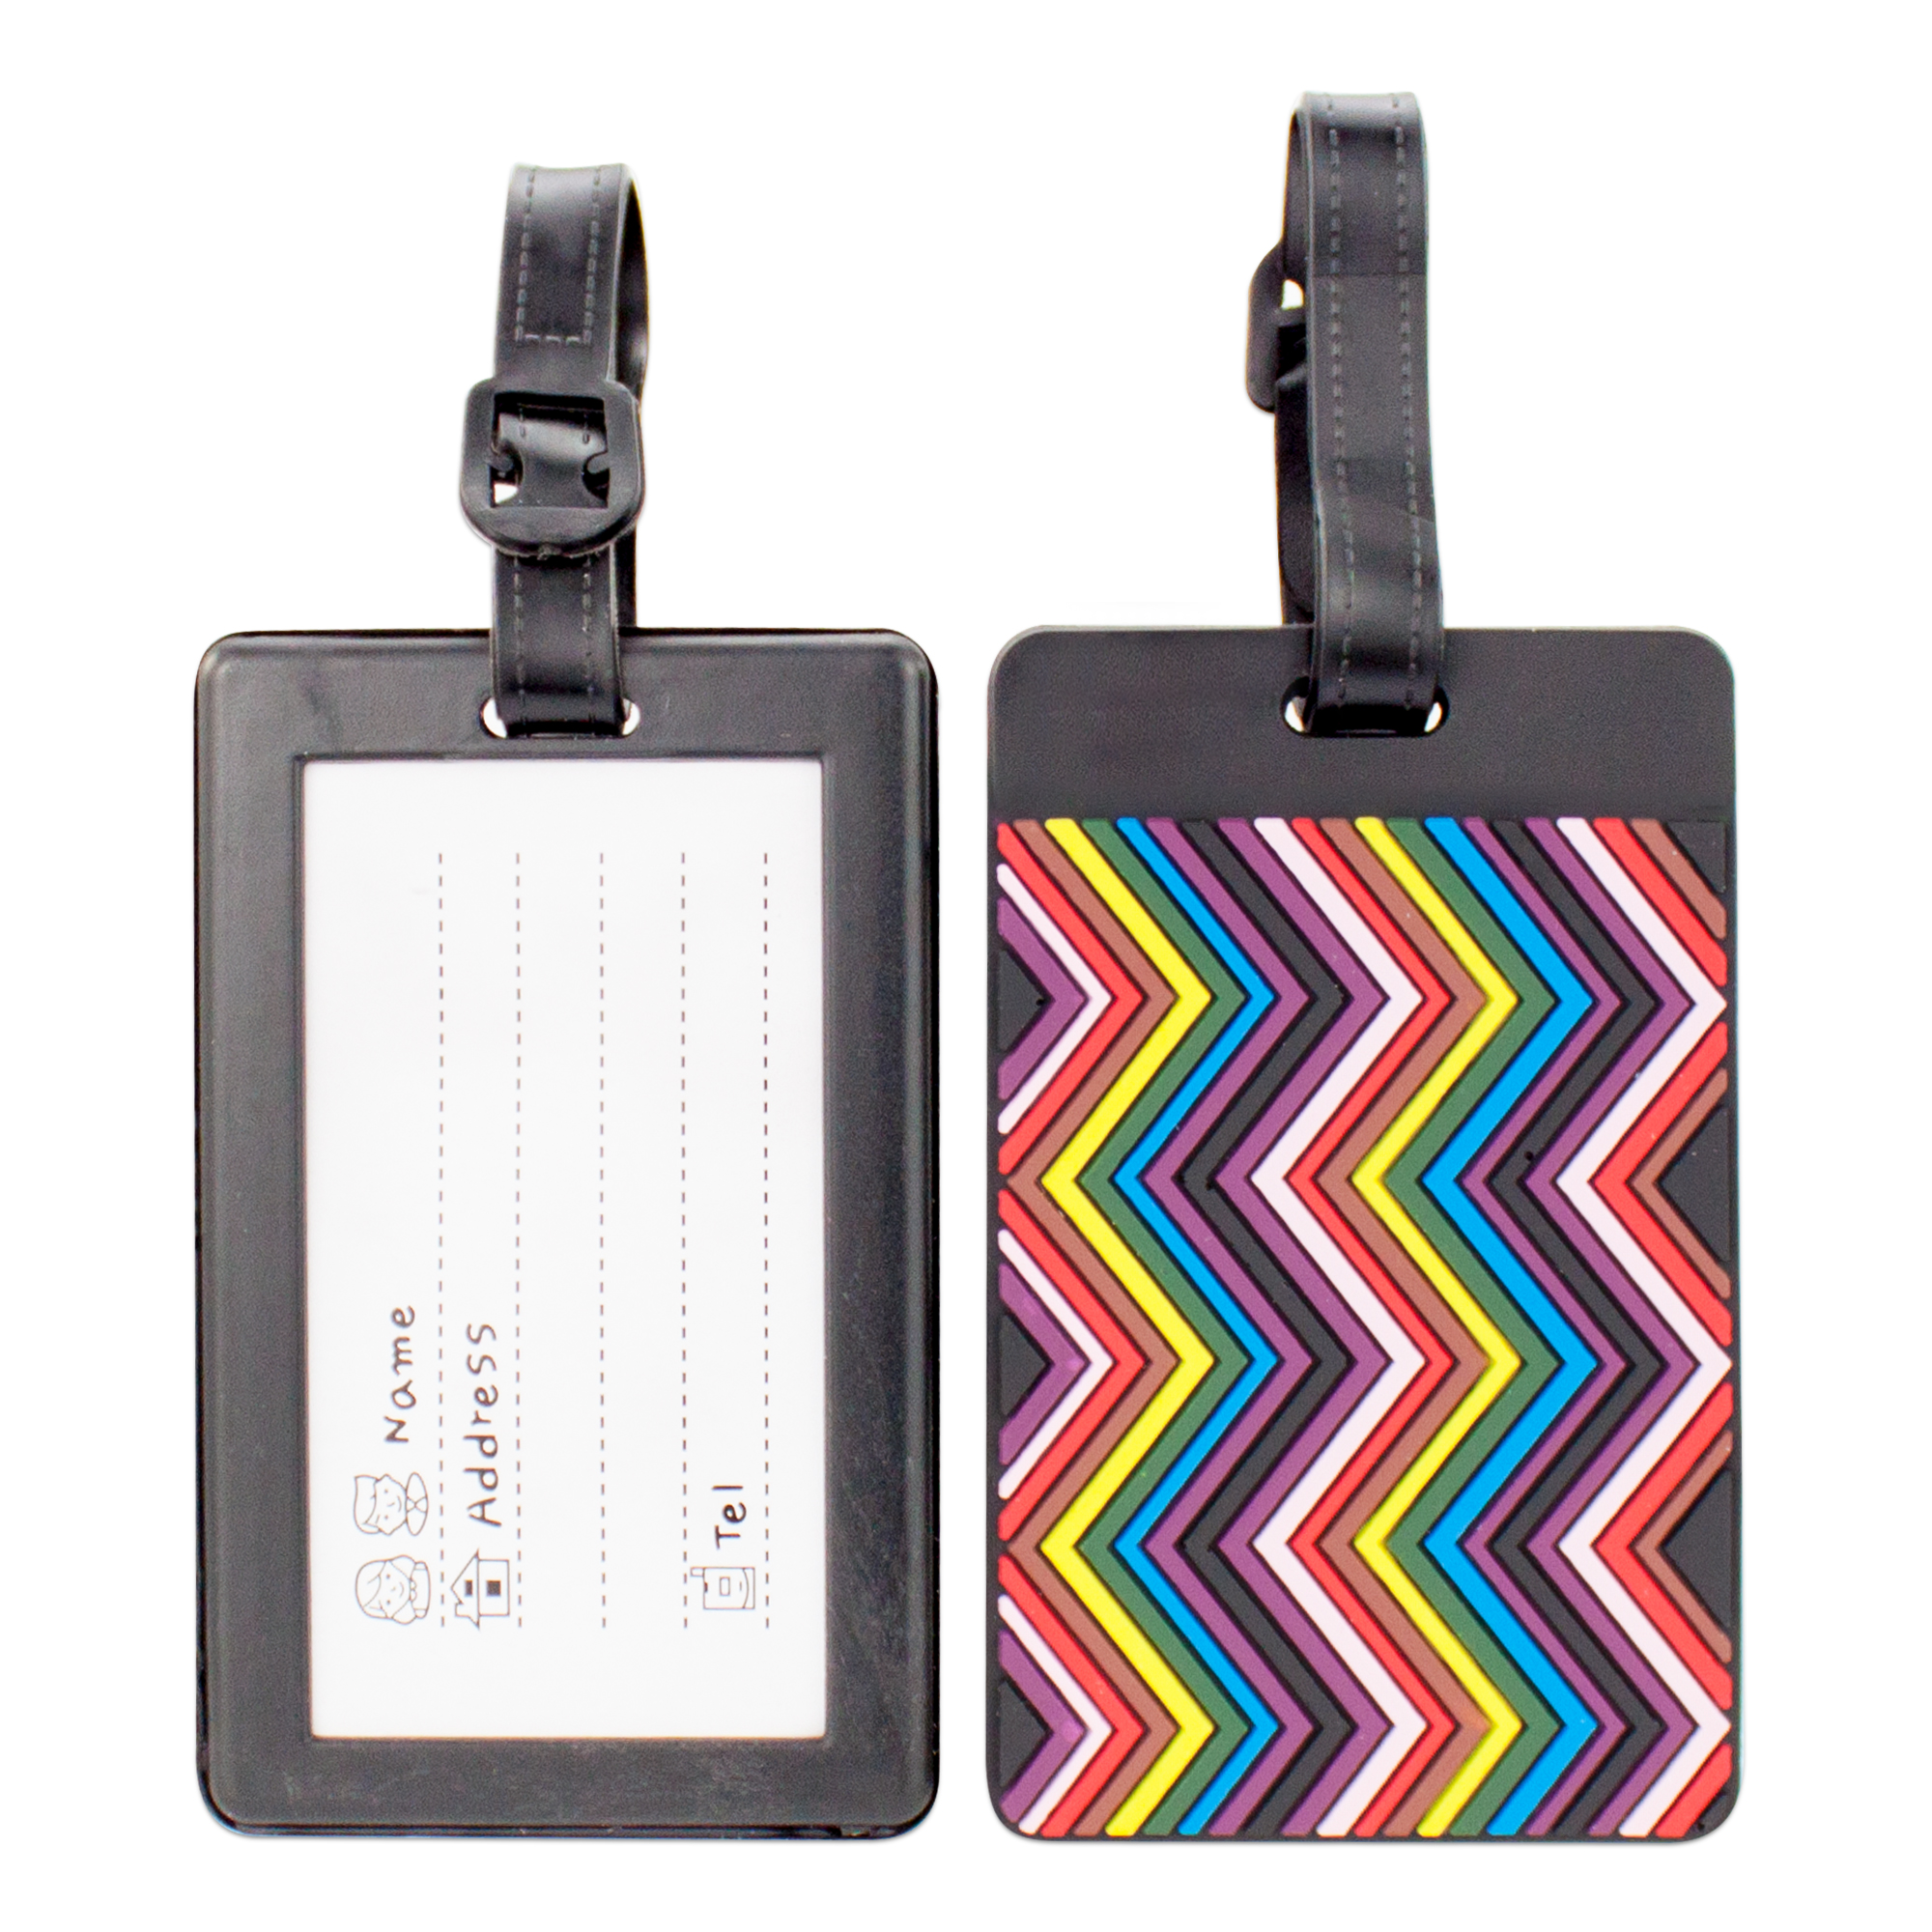 Miami CarryOn Colorful Luggage Tags/Card Holder/Bag Tags/ID Tags - 2 Set (Rainbow Zigzag)